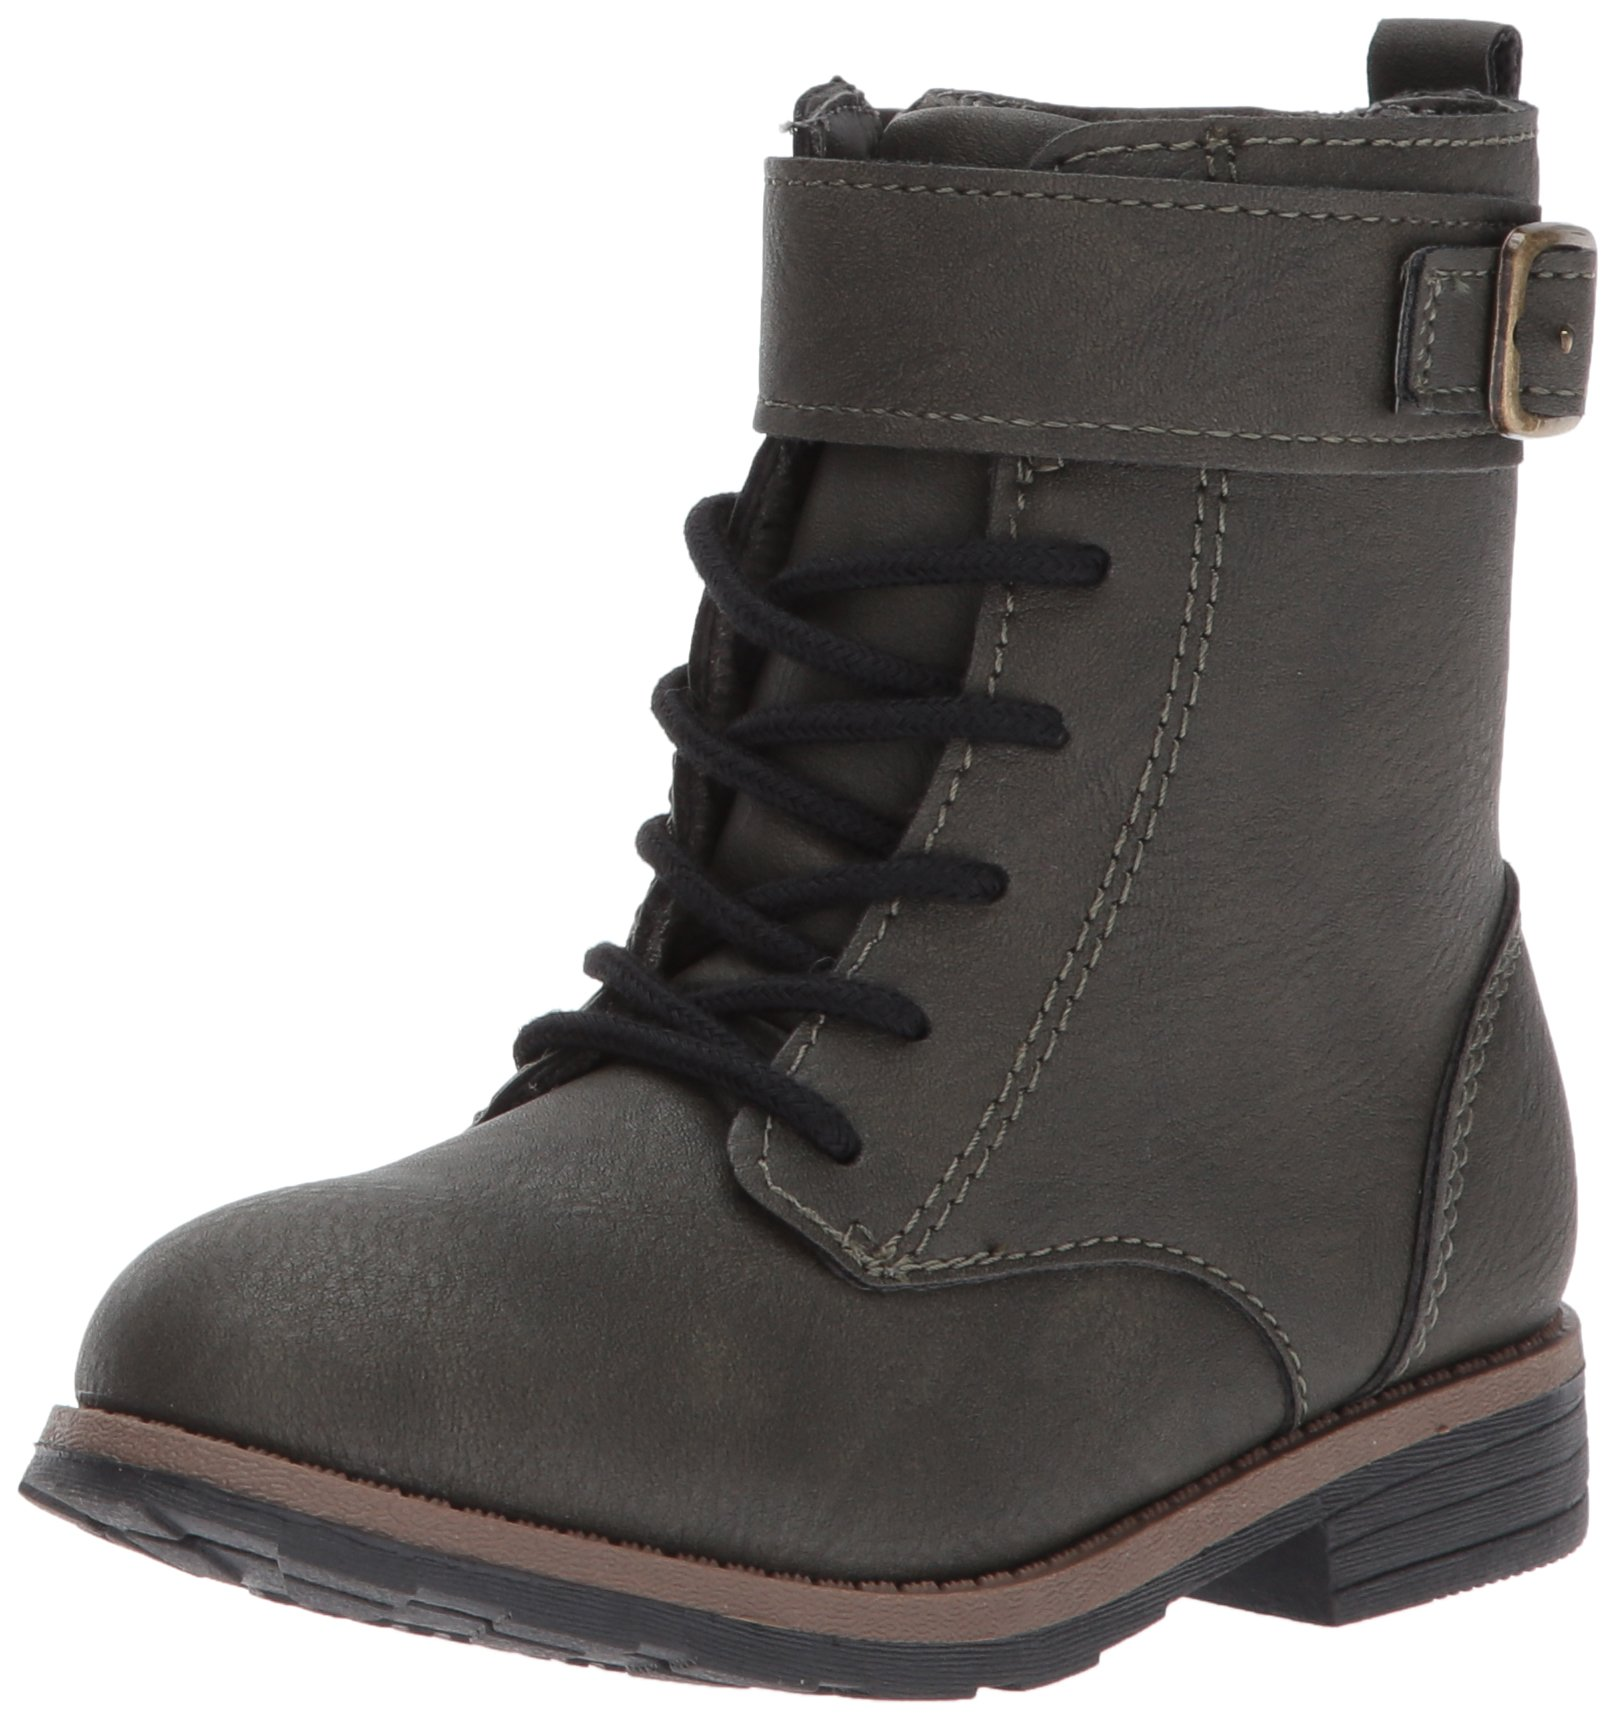 Carter's Girls' Comrade2 Fashion Boot, Olive, 12 M US Little Kid